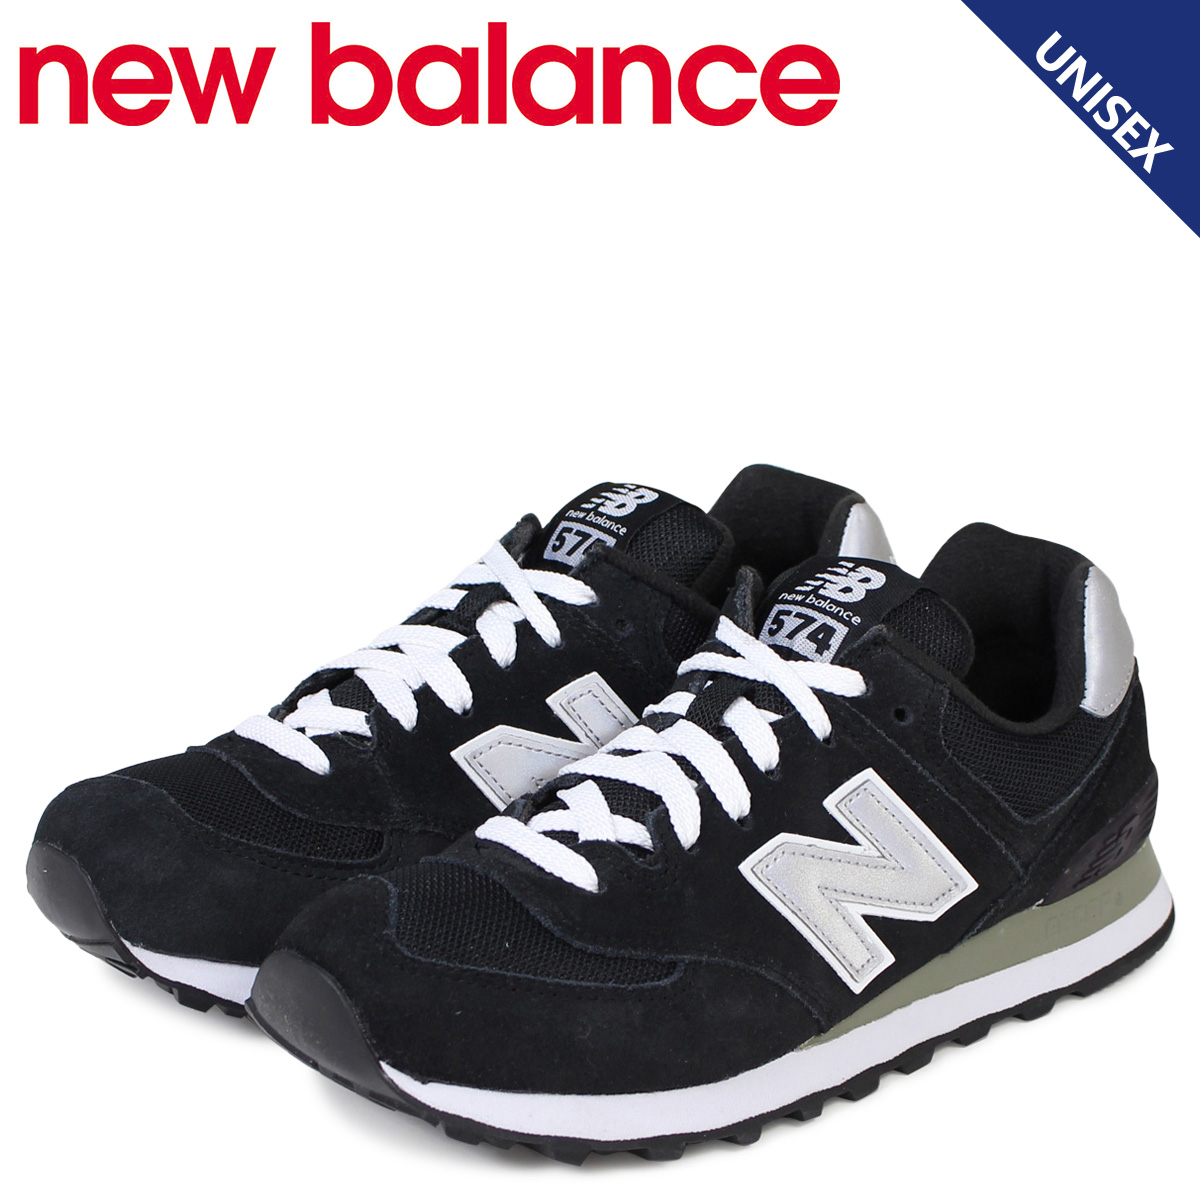 uk availability e7f37 41cb8 new balance 574 men's lady's New Balance sneakers M574NK D Wise shoes black  [171]